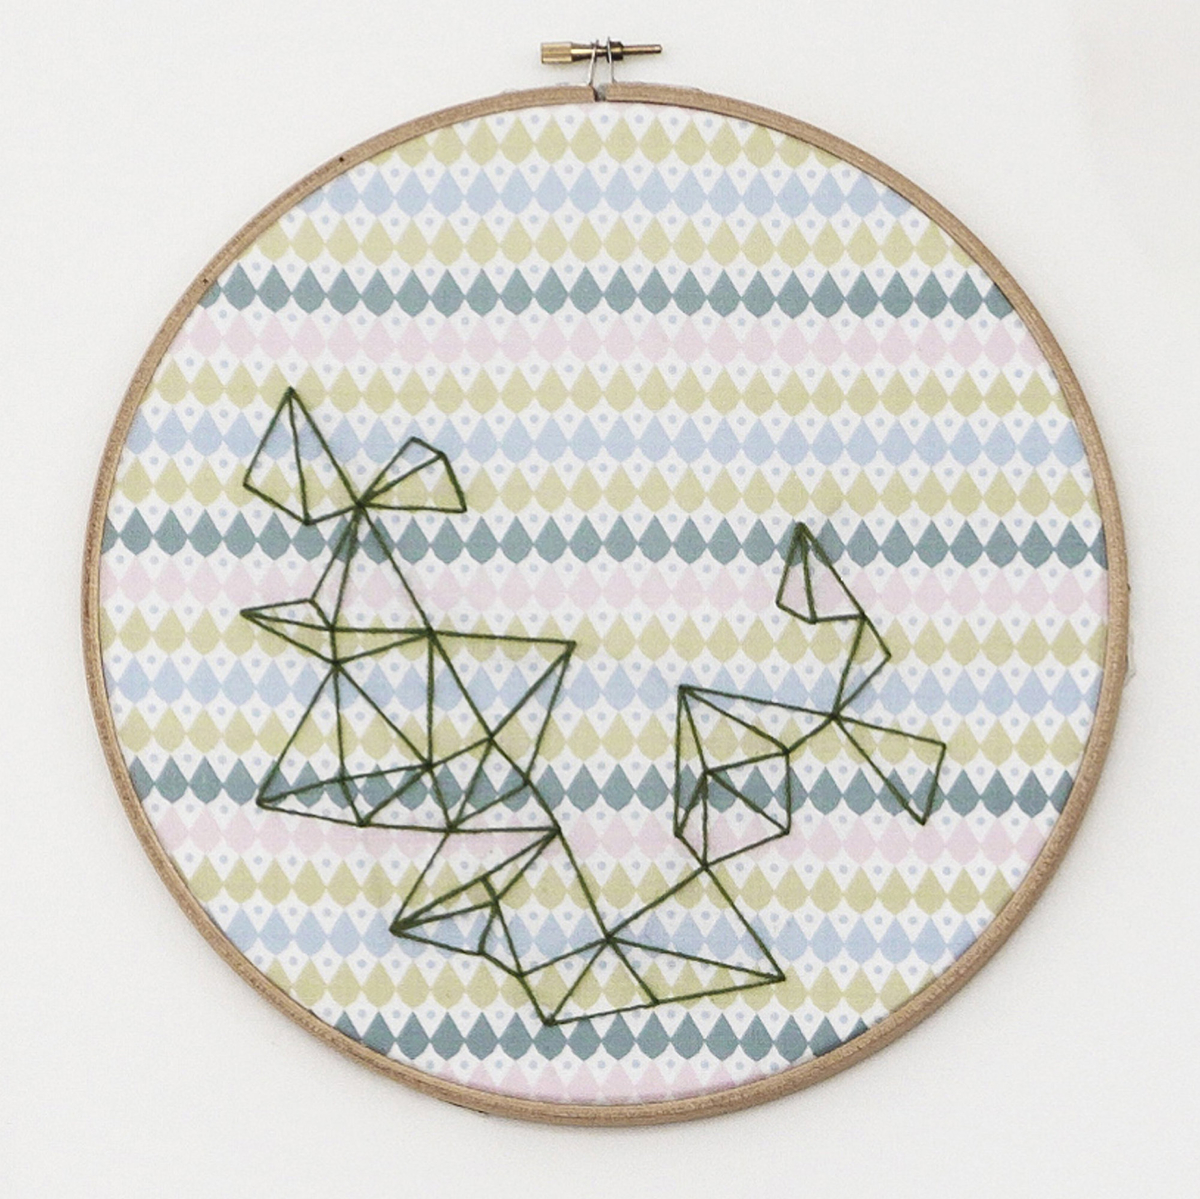 Embroider a picture